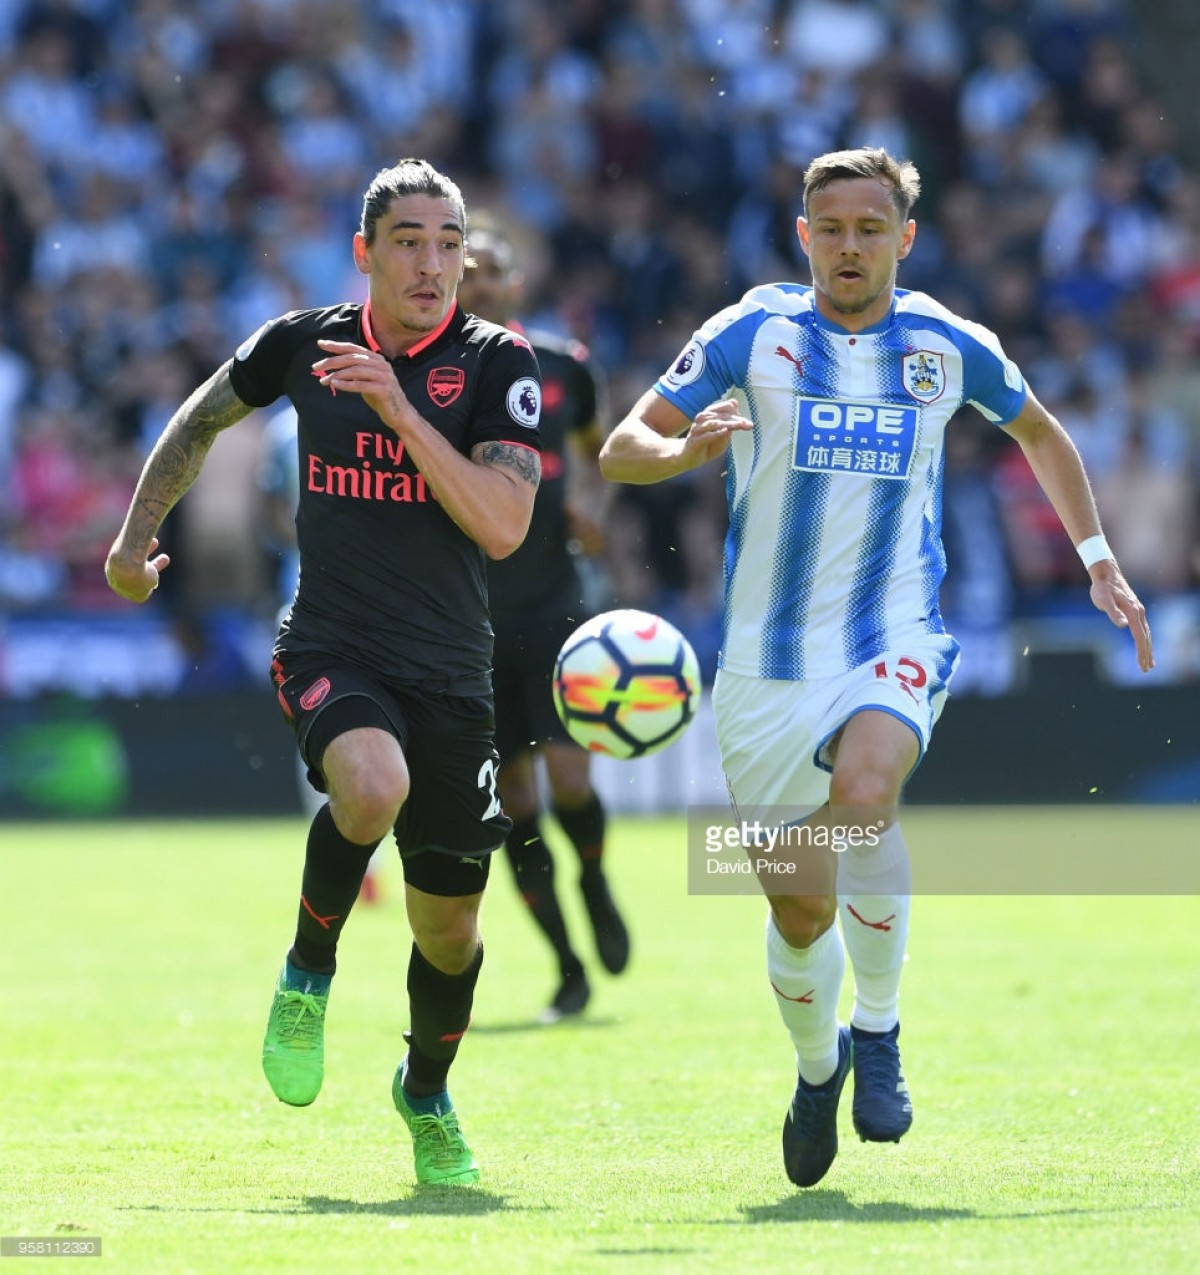 Huddersfield Town Chris Lowe reflects on defeat to Arsenal